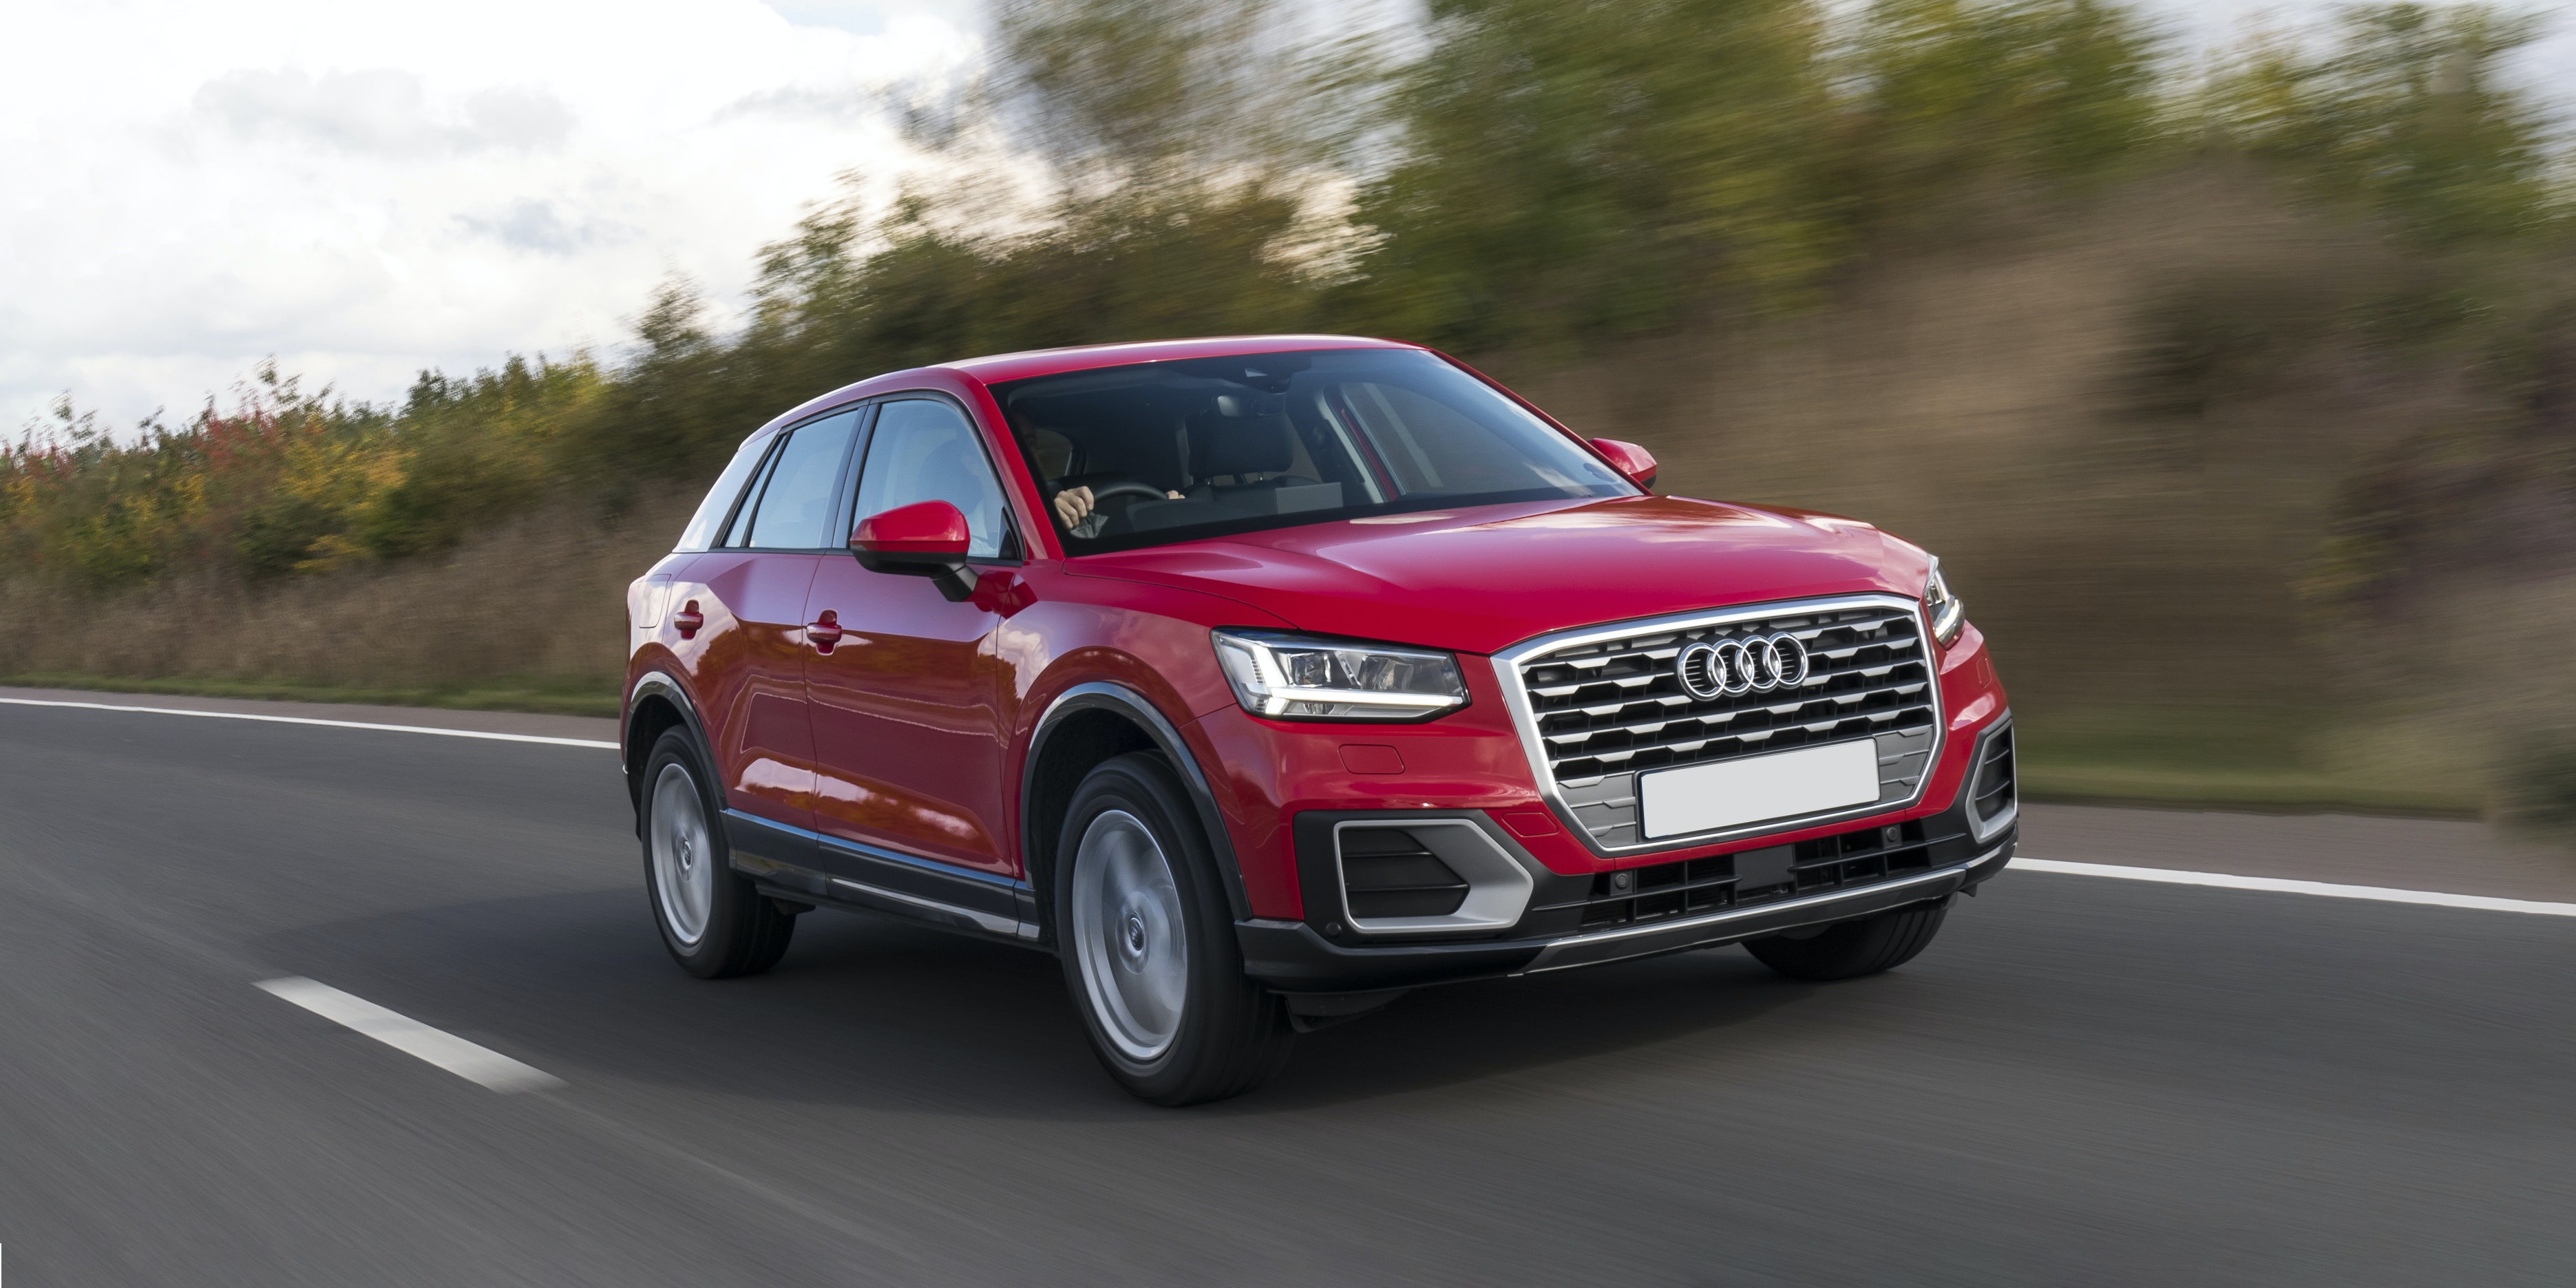 Audi Sq2 Release Date Uk >> Audi Q2 Review | carwow